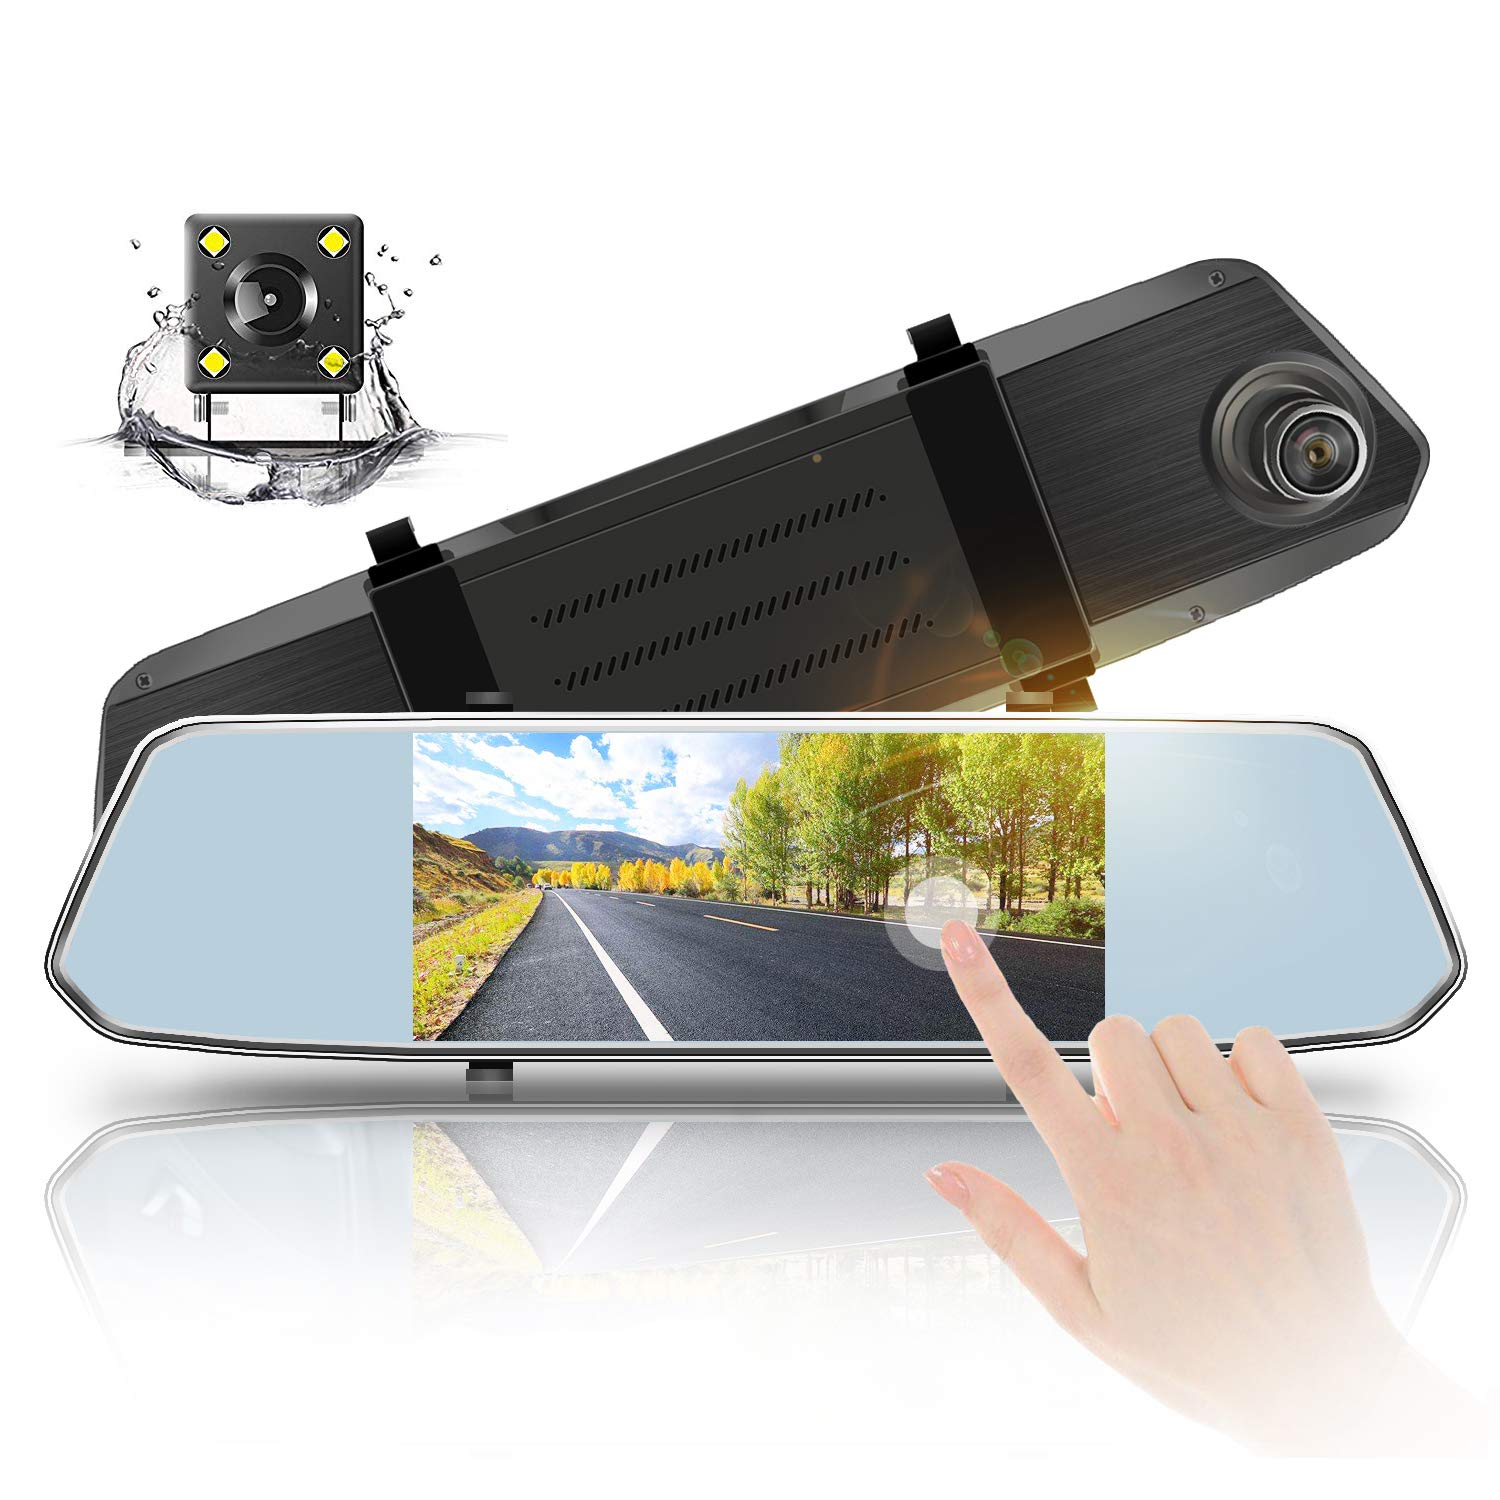 Aoxun Mirror Dash Camera 7'' Touch Screen - Dual Lens 1080P HD Front 720P HD Wide Angle Backup Camera with G-Sensor and 24-Hour Parking Monitor